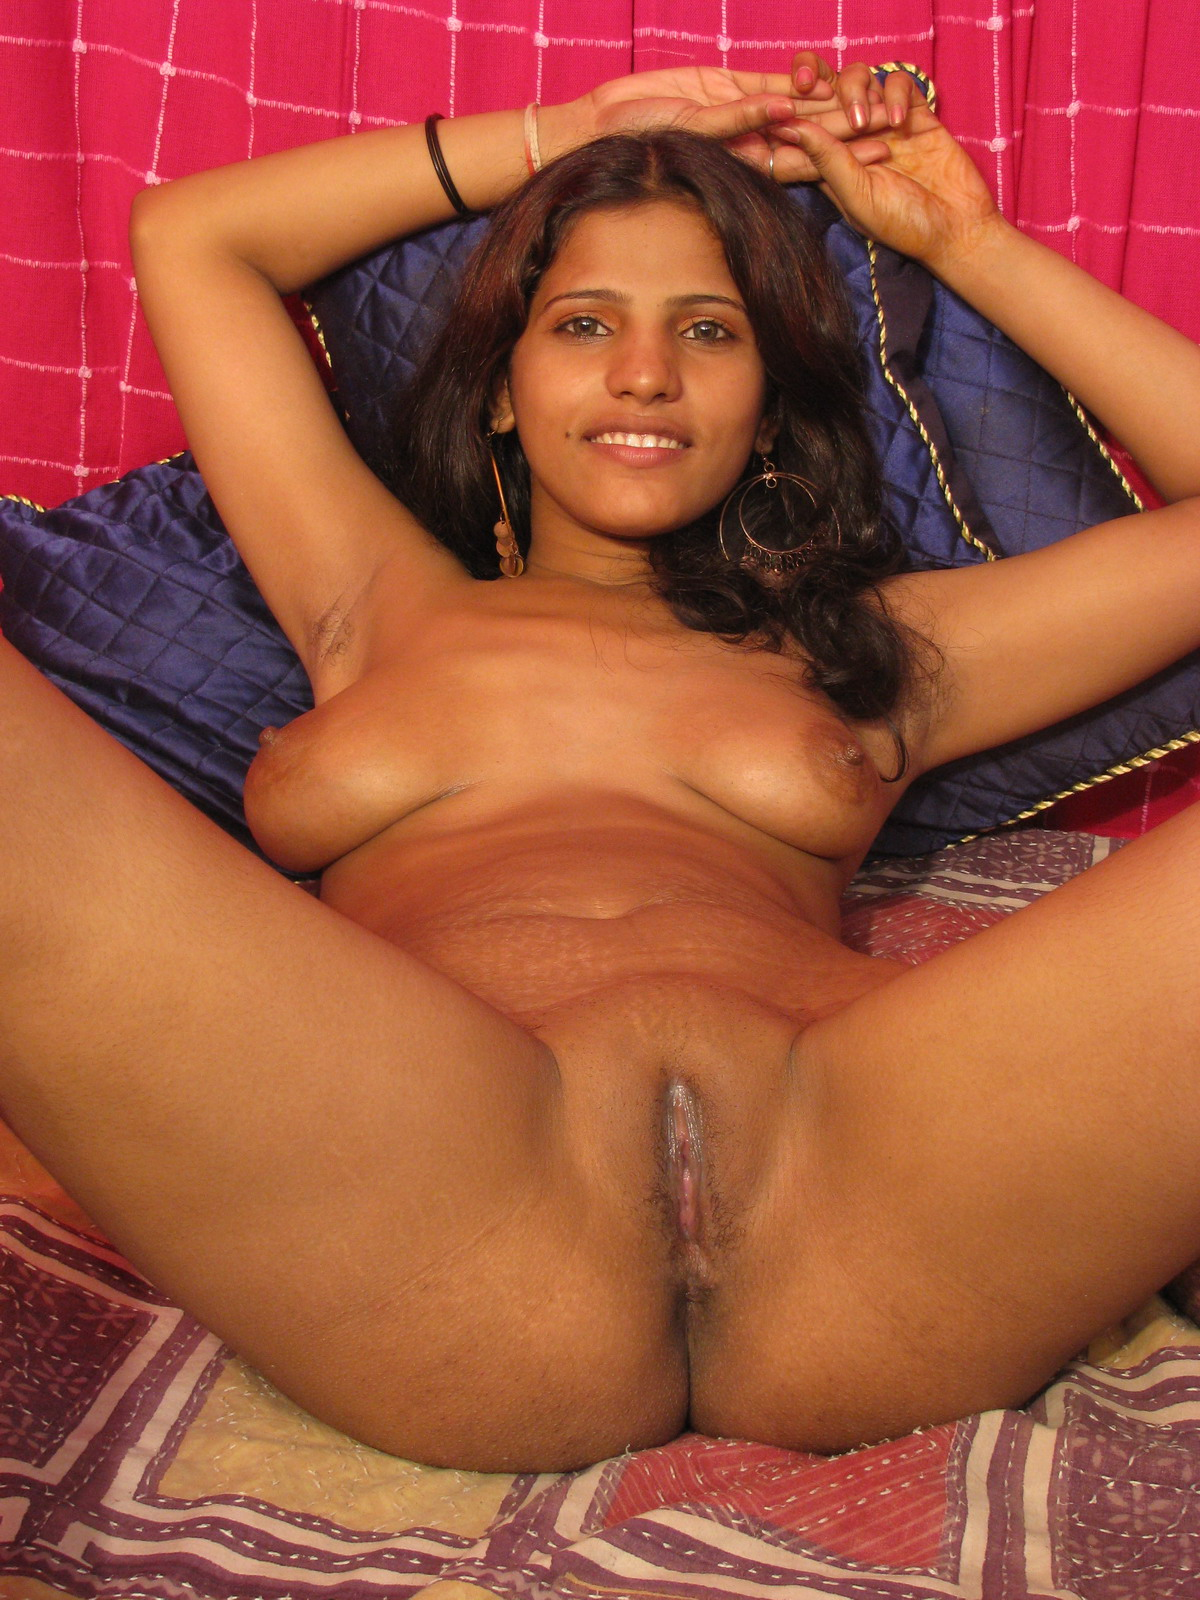 Call girl sex with her client masala photo